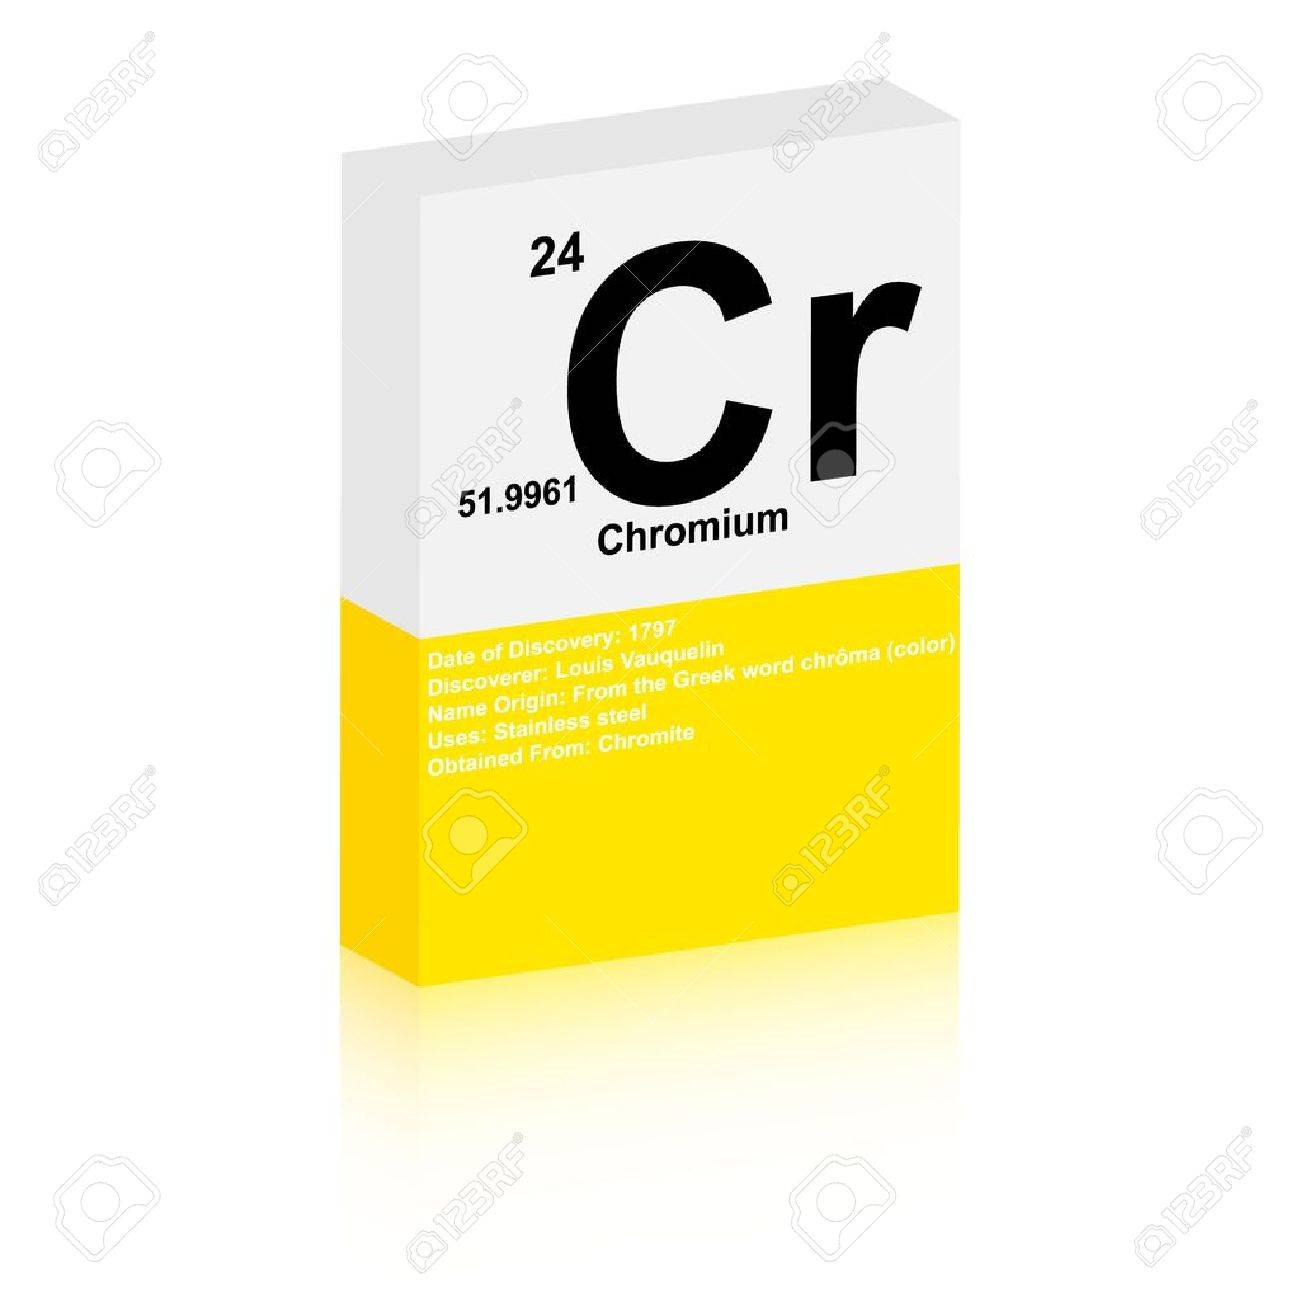 Chromium symbol royalty free cliparts vectors and stock chromium symbol stock vector 13345162 urtaz Image collections